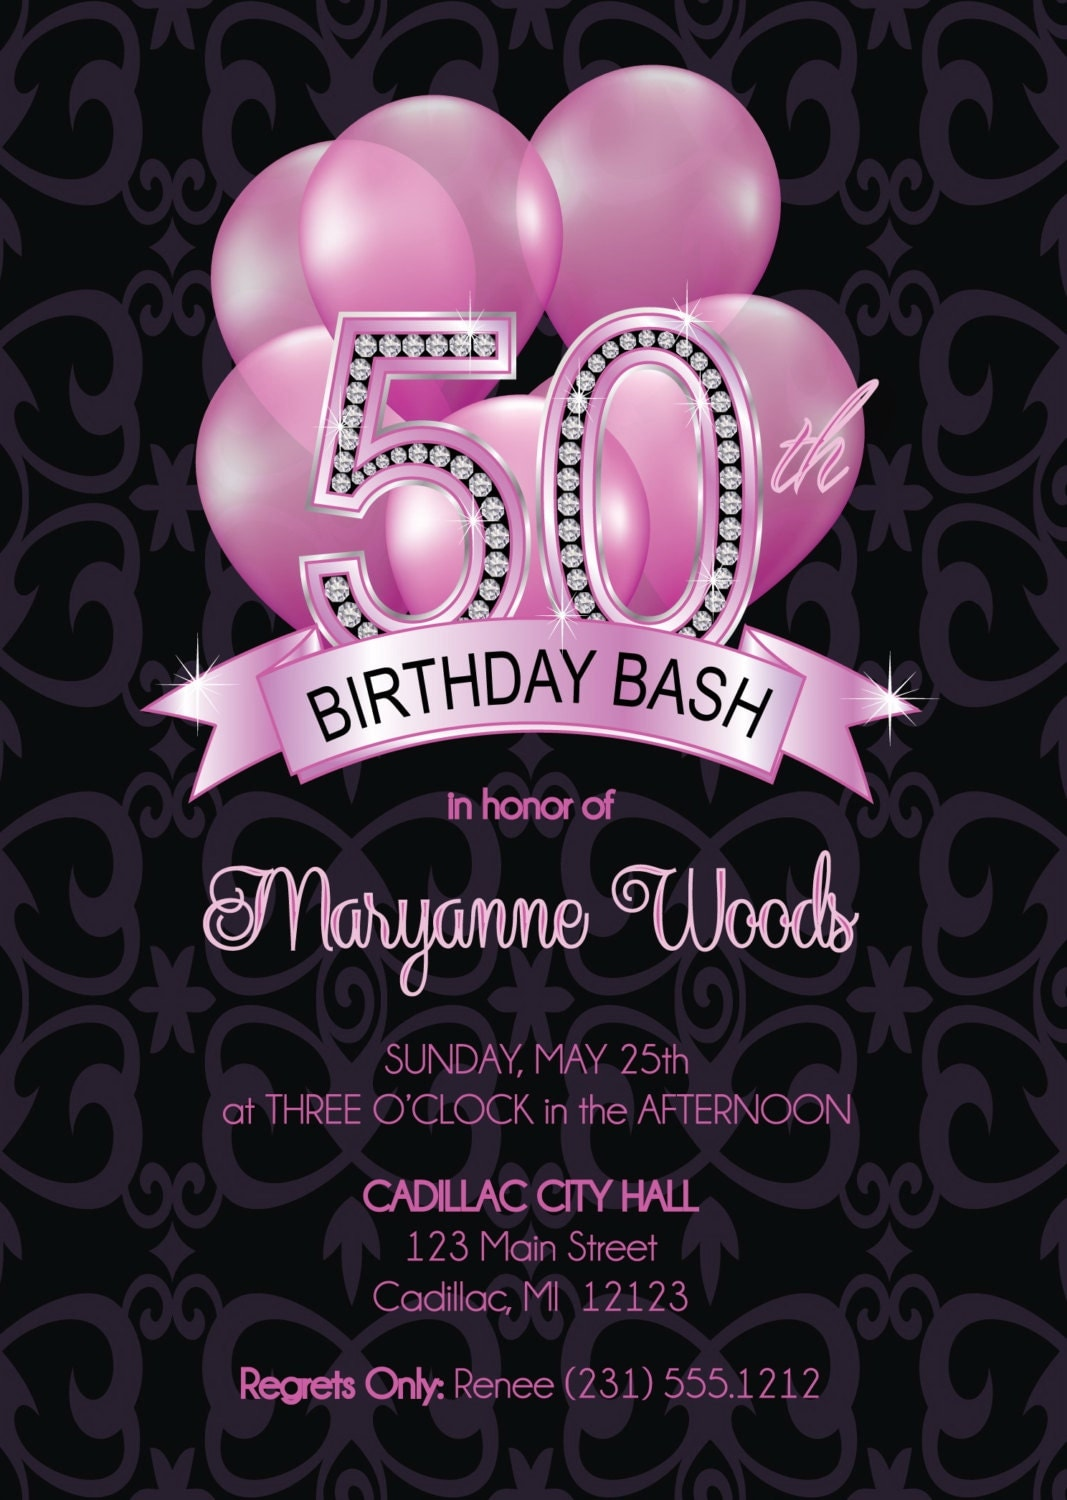 50th birthday adult invitation invitations party diy invite cards printable surprise announcements bday fabpartyprints printed card milestone digital pink stationery